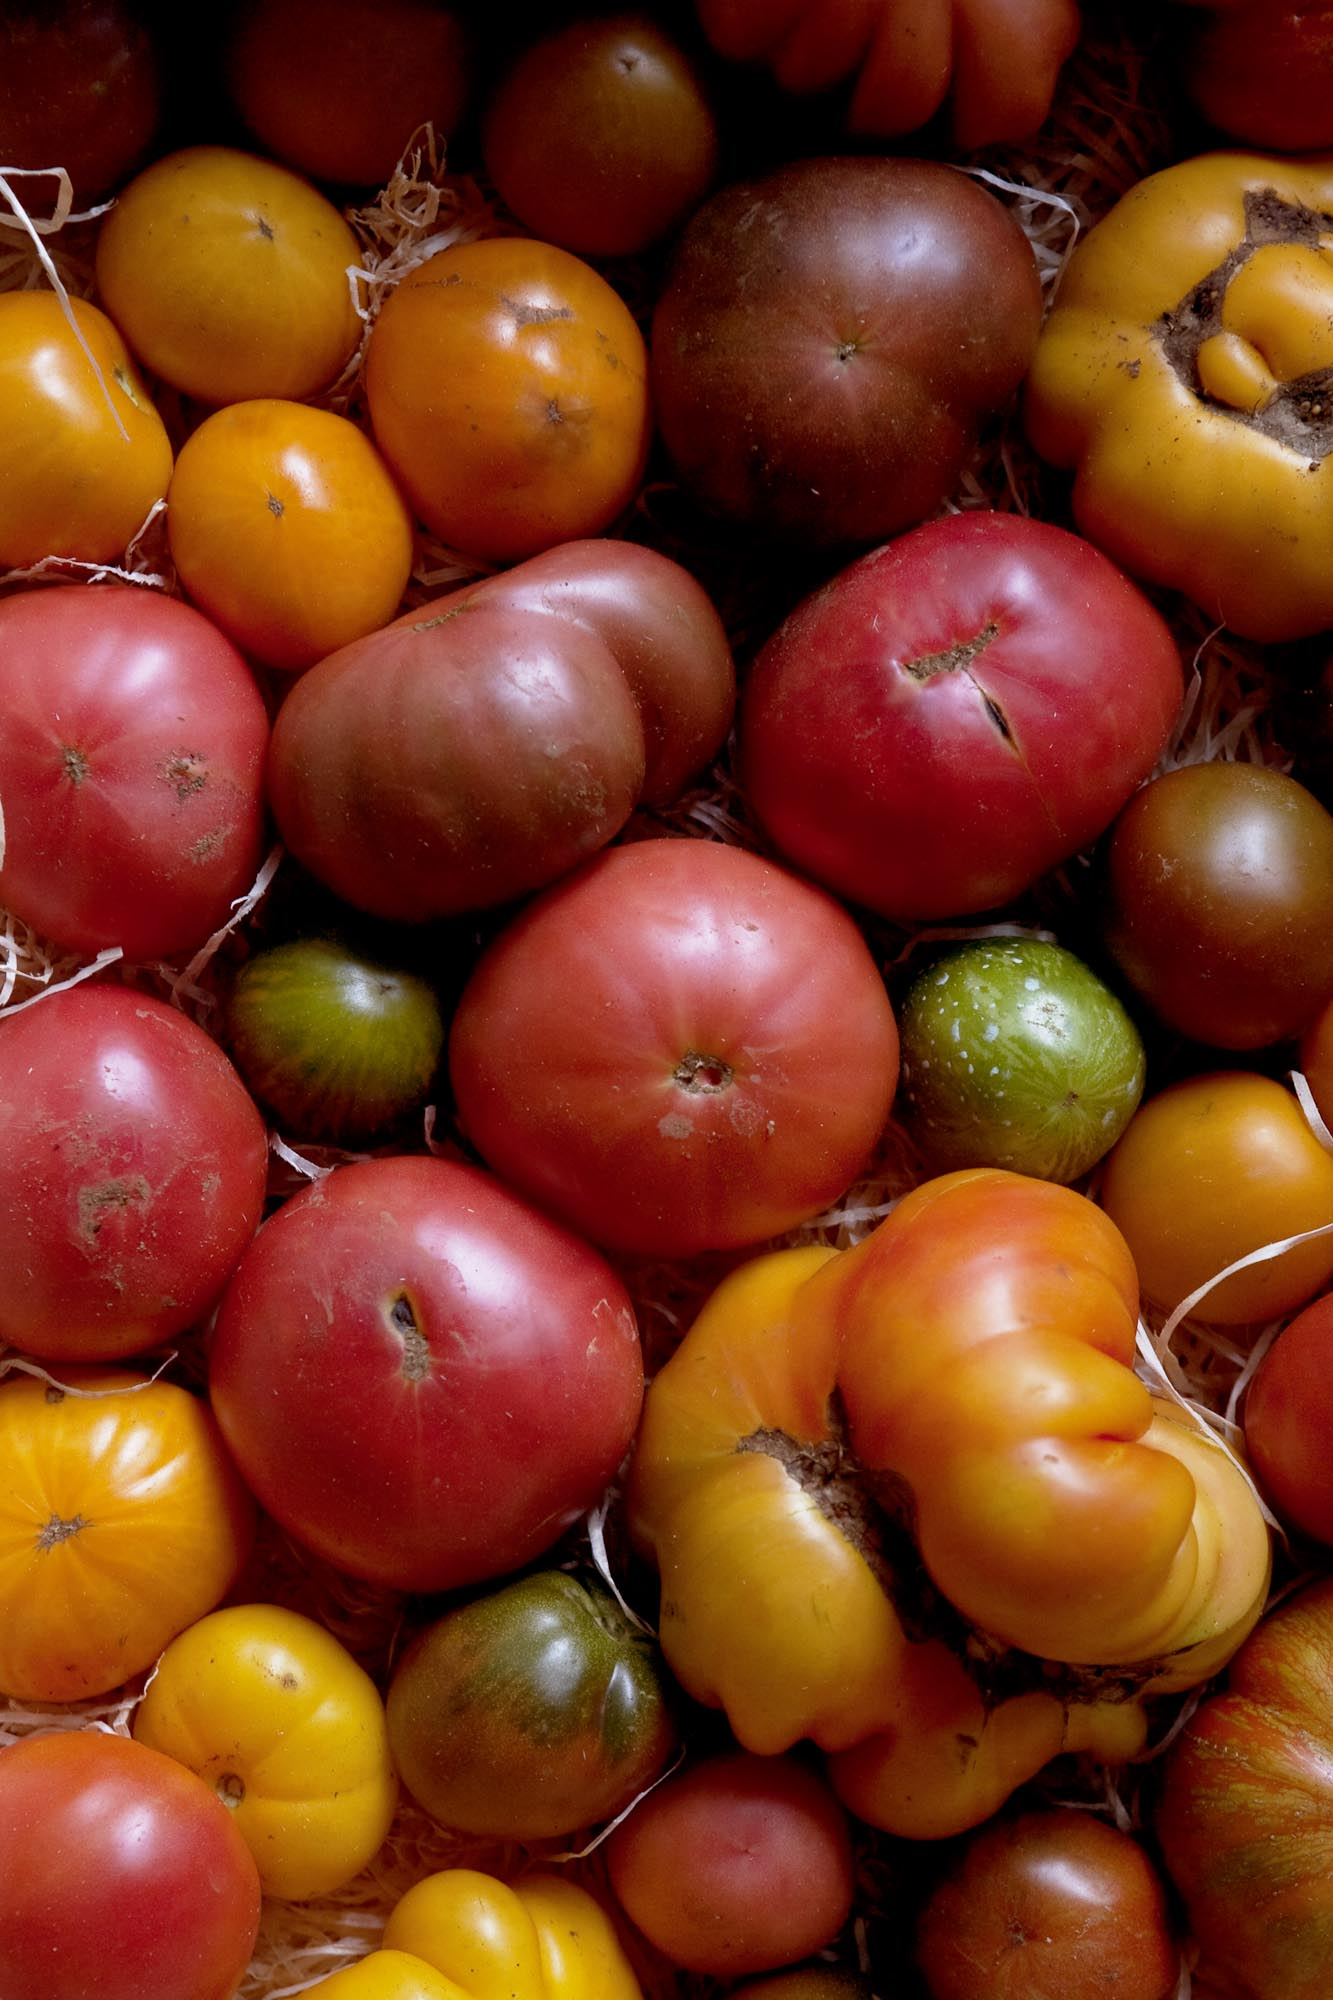 Tomatoes, Le Chateaubriand